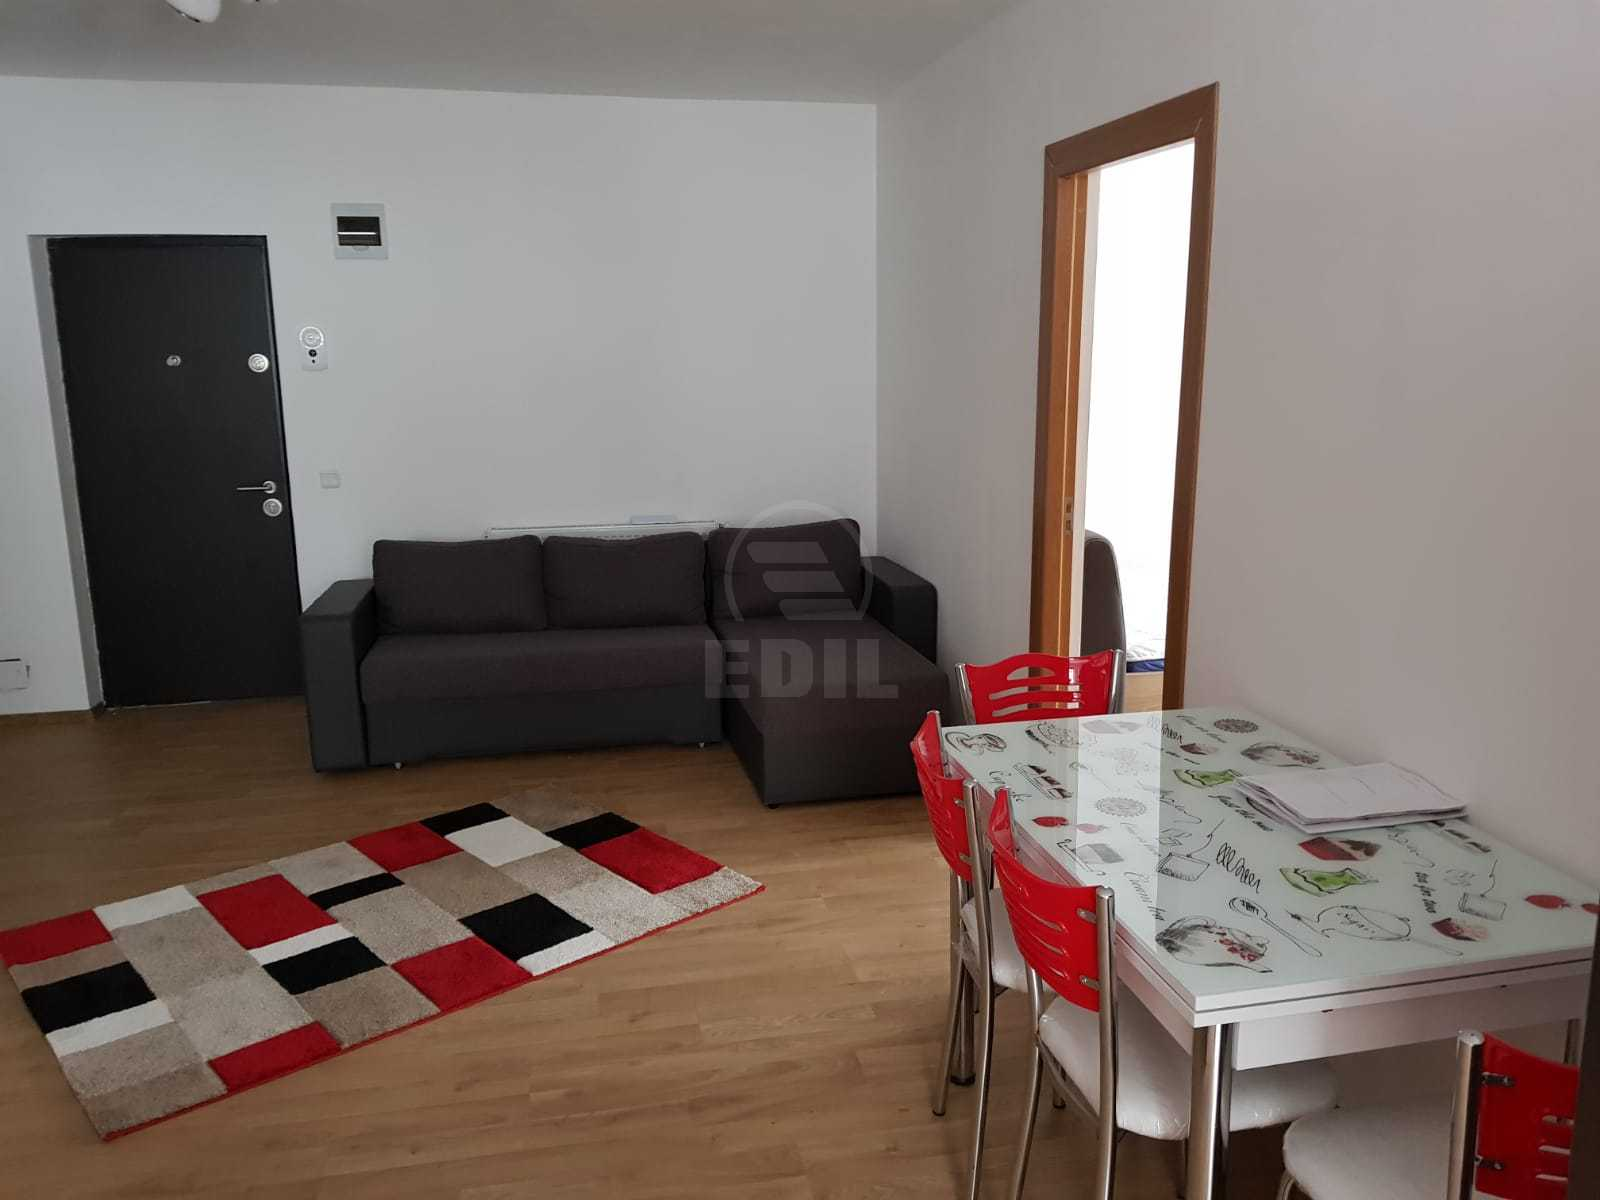 Apartment for rent 3 rooms, APCJ232650FLO-14